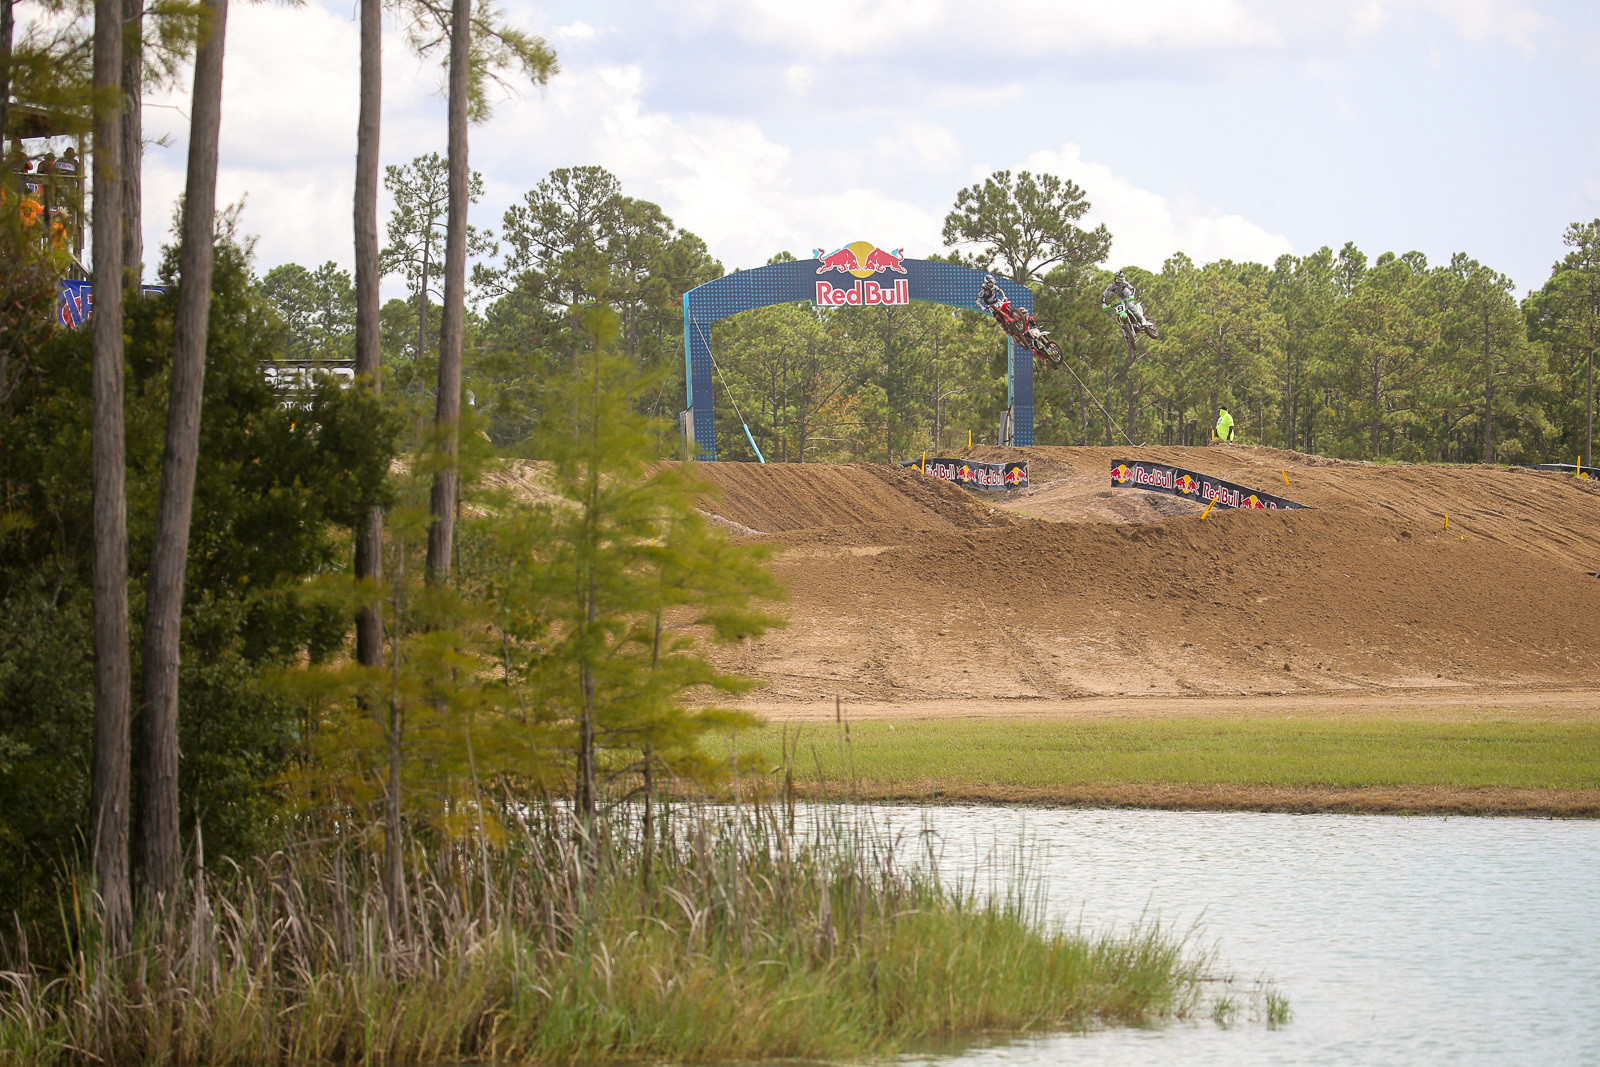 Ready for another blast of Pit Bits? We were stoked that we made it back to Florida for another round of Lucas Oil Pro Motocross. It sure is a scenic track.